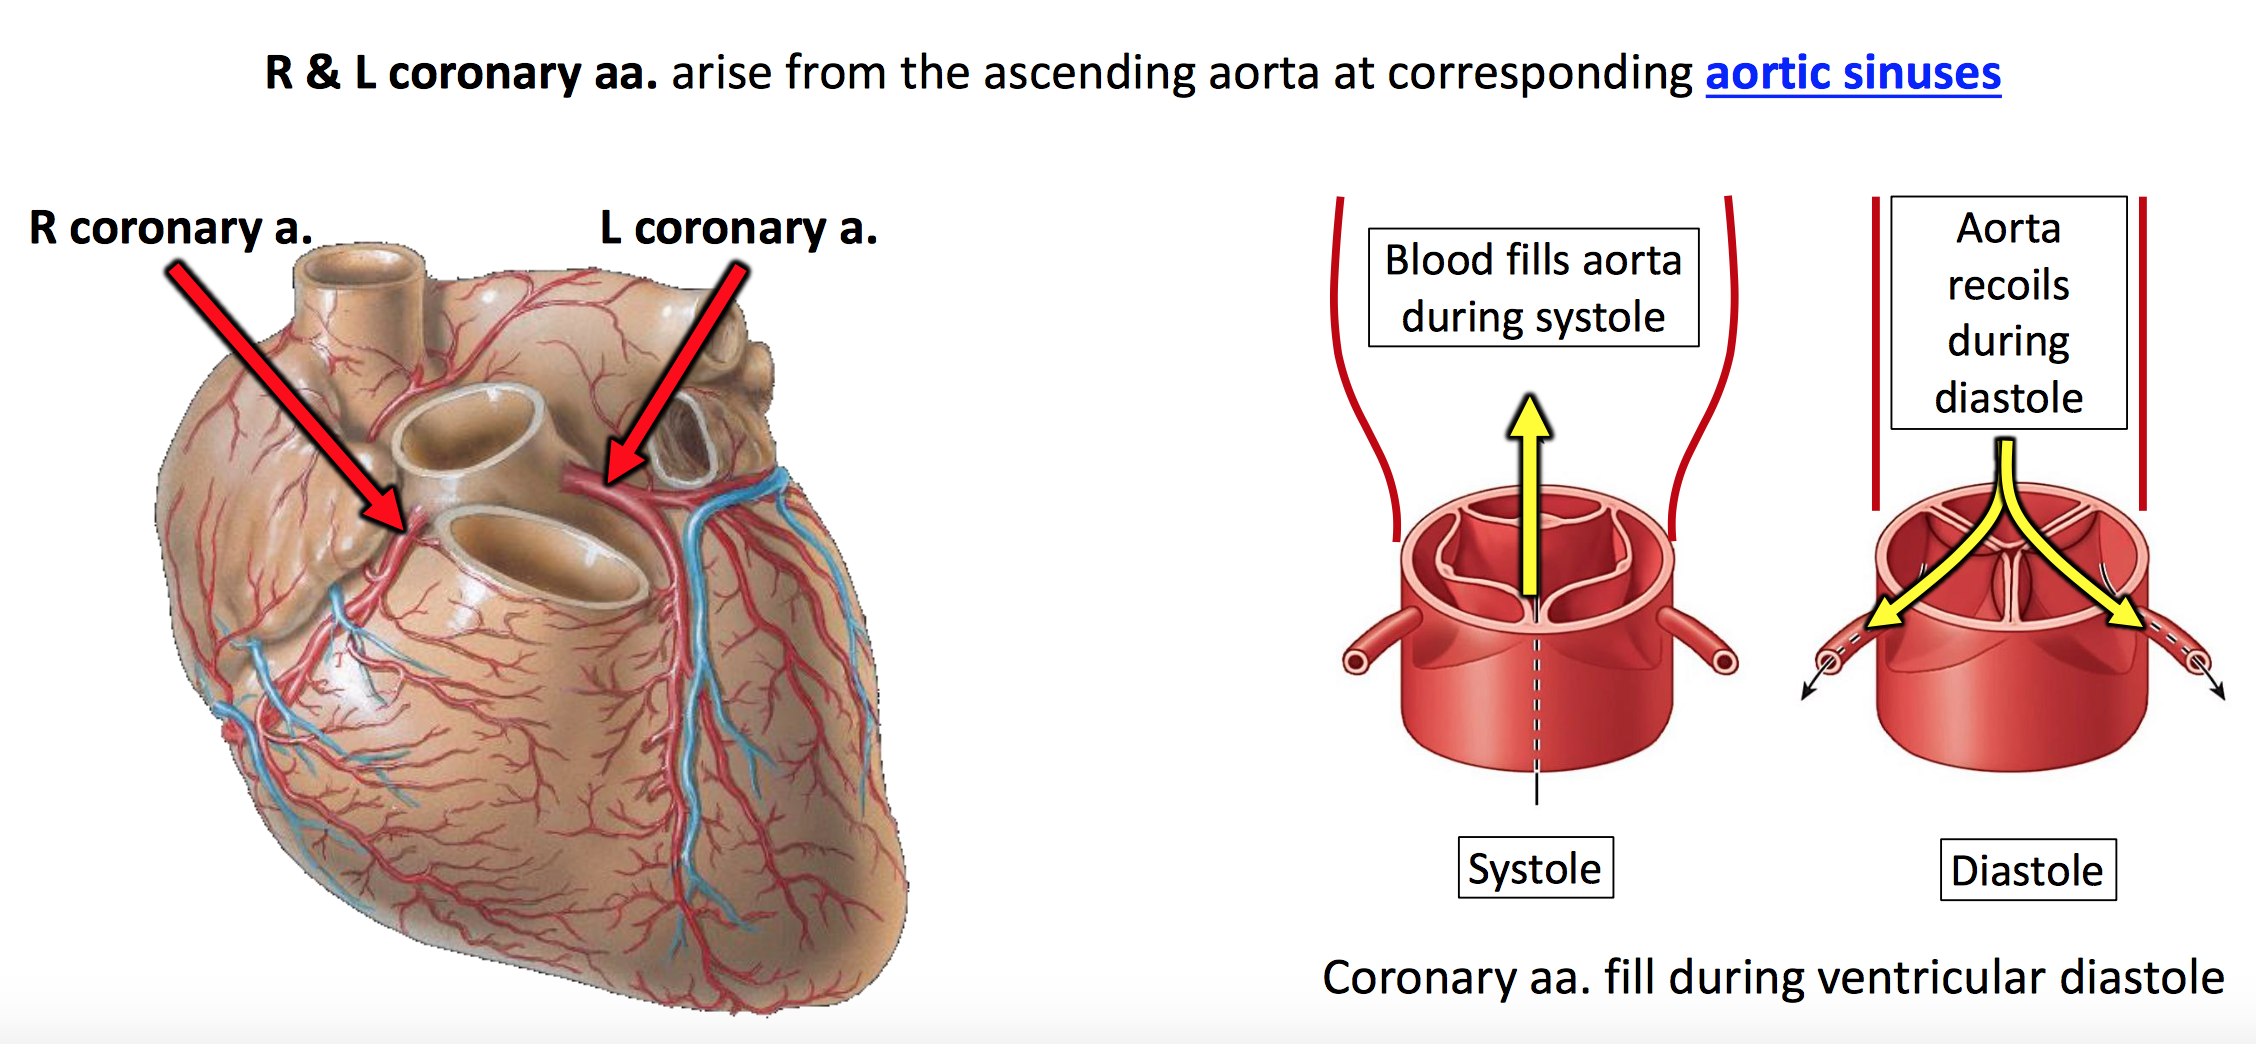 Why Is The Coronary Artery Called An Artery Even Though Artery Are